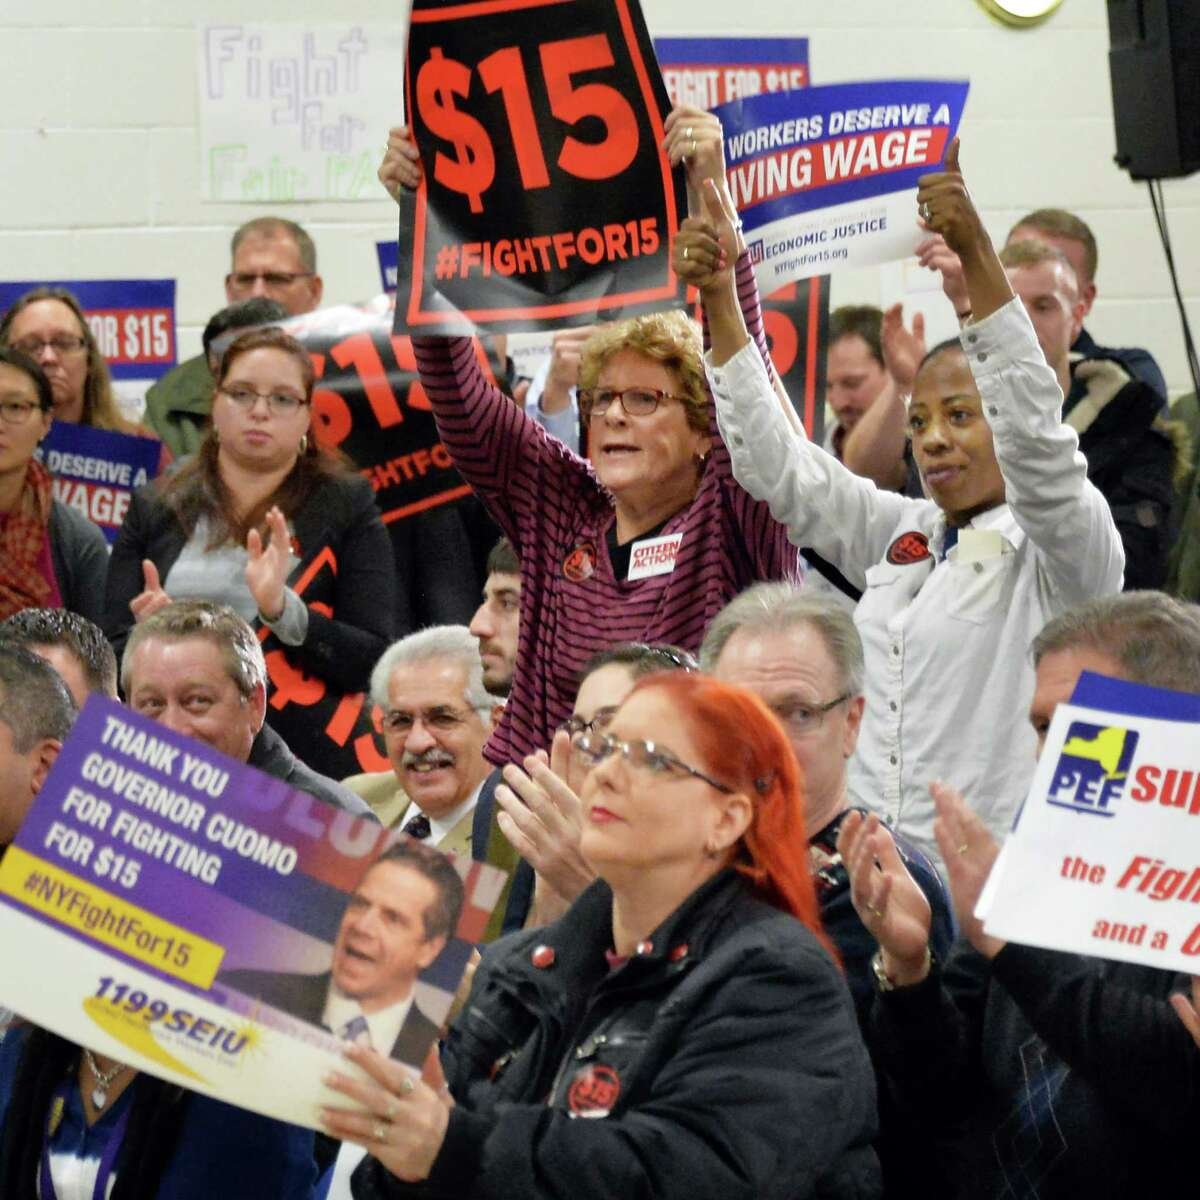 Supporters cheer Governor Andrew Cuomo speaking during a Drive for $15 rally at the Albany Labor Temple Thursday Feb. 25, 2016 in Albany, NY. (John Carl D'Annibale / Times Union)